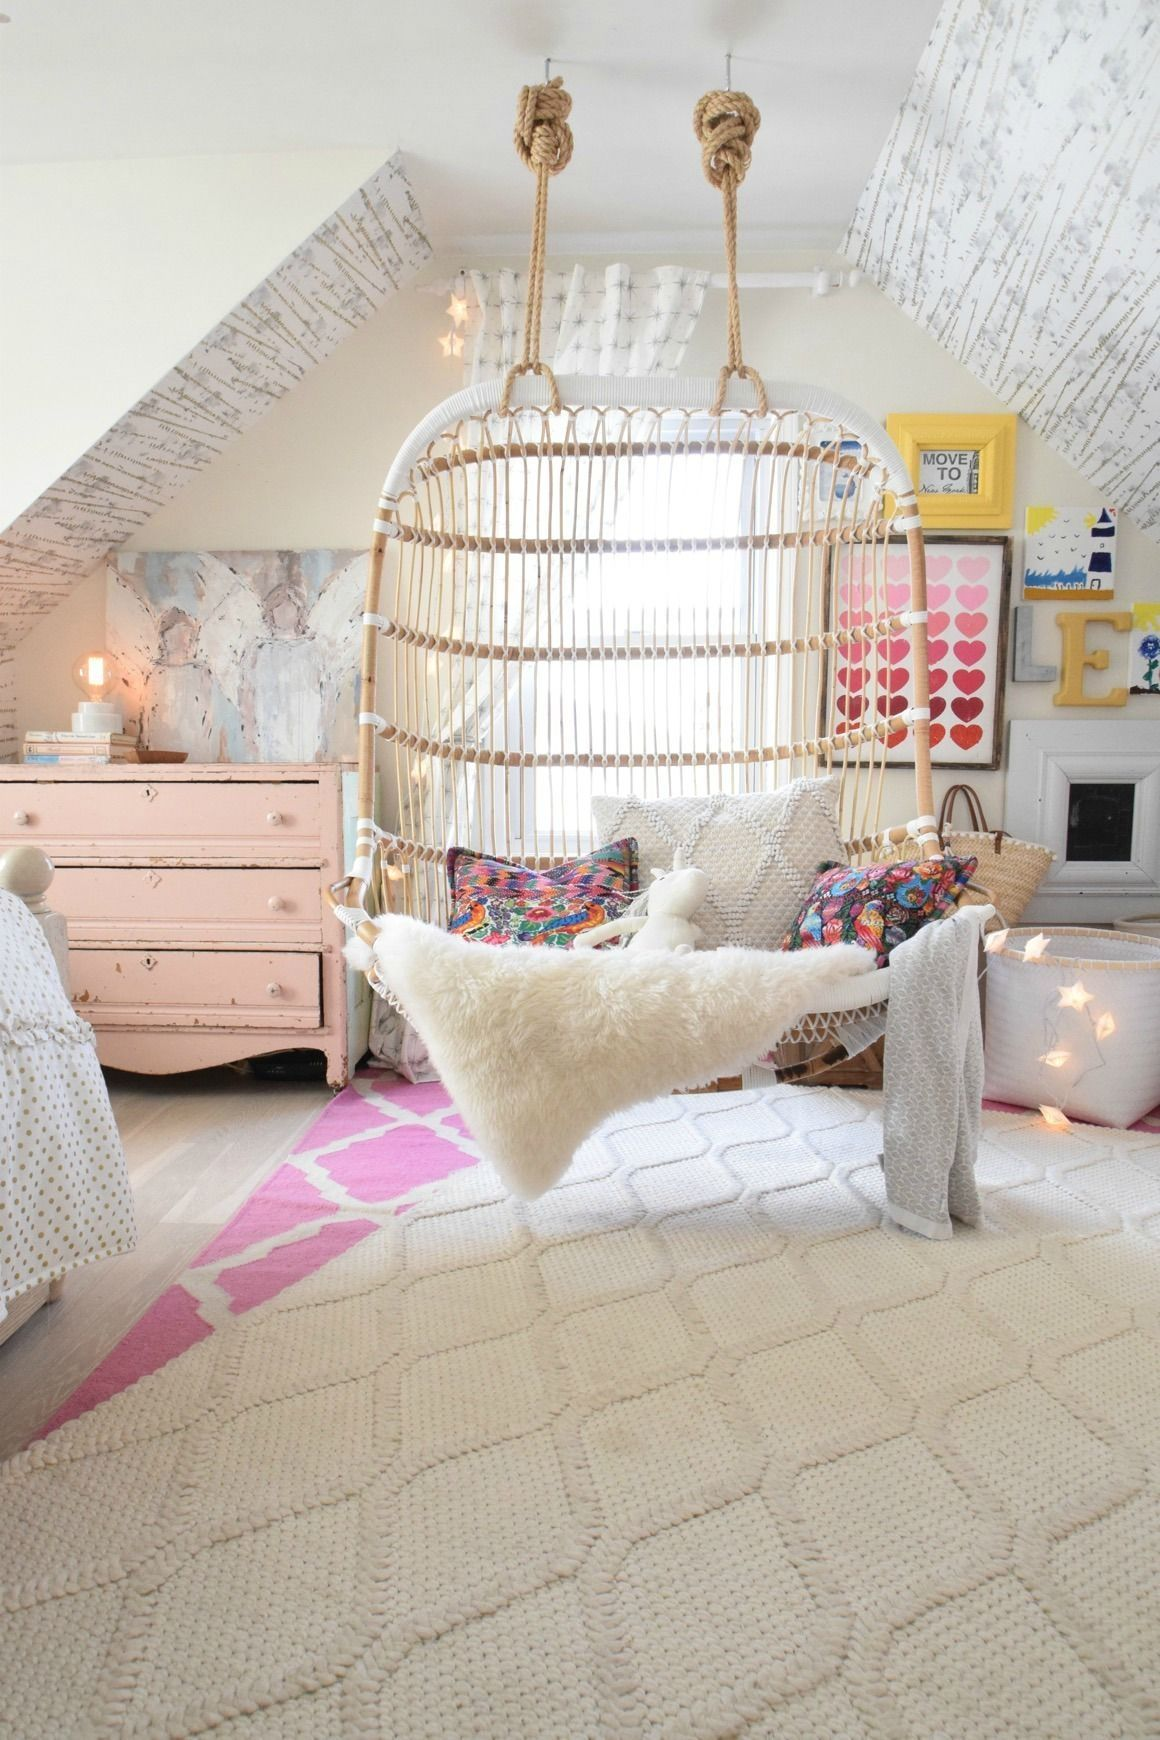 Cute ideas for a kids room under the roof  Girl bedroom designs